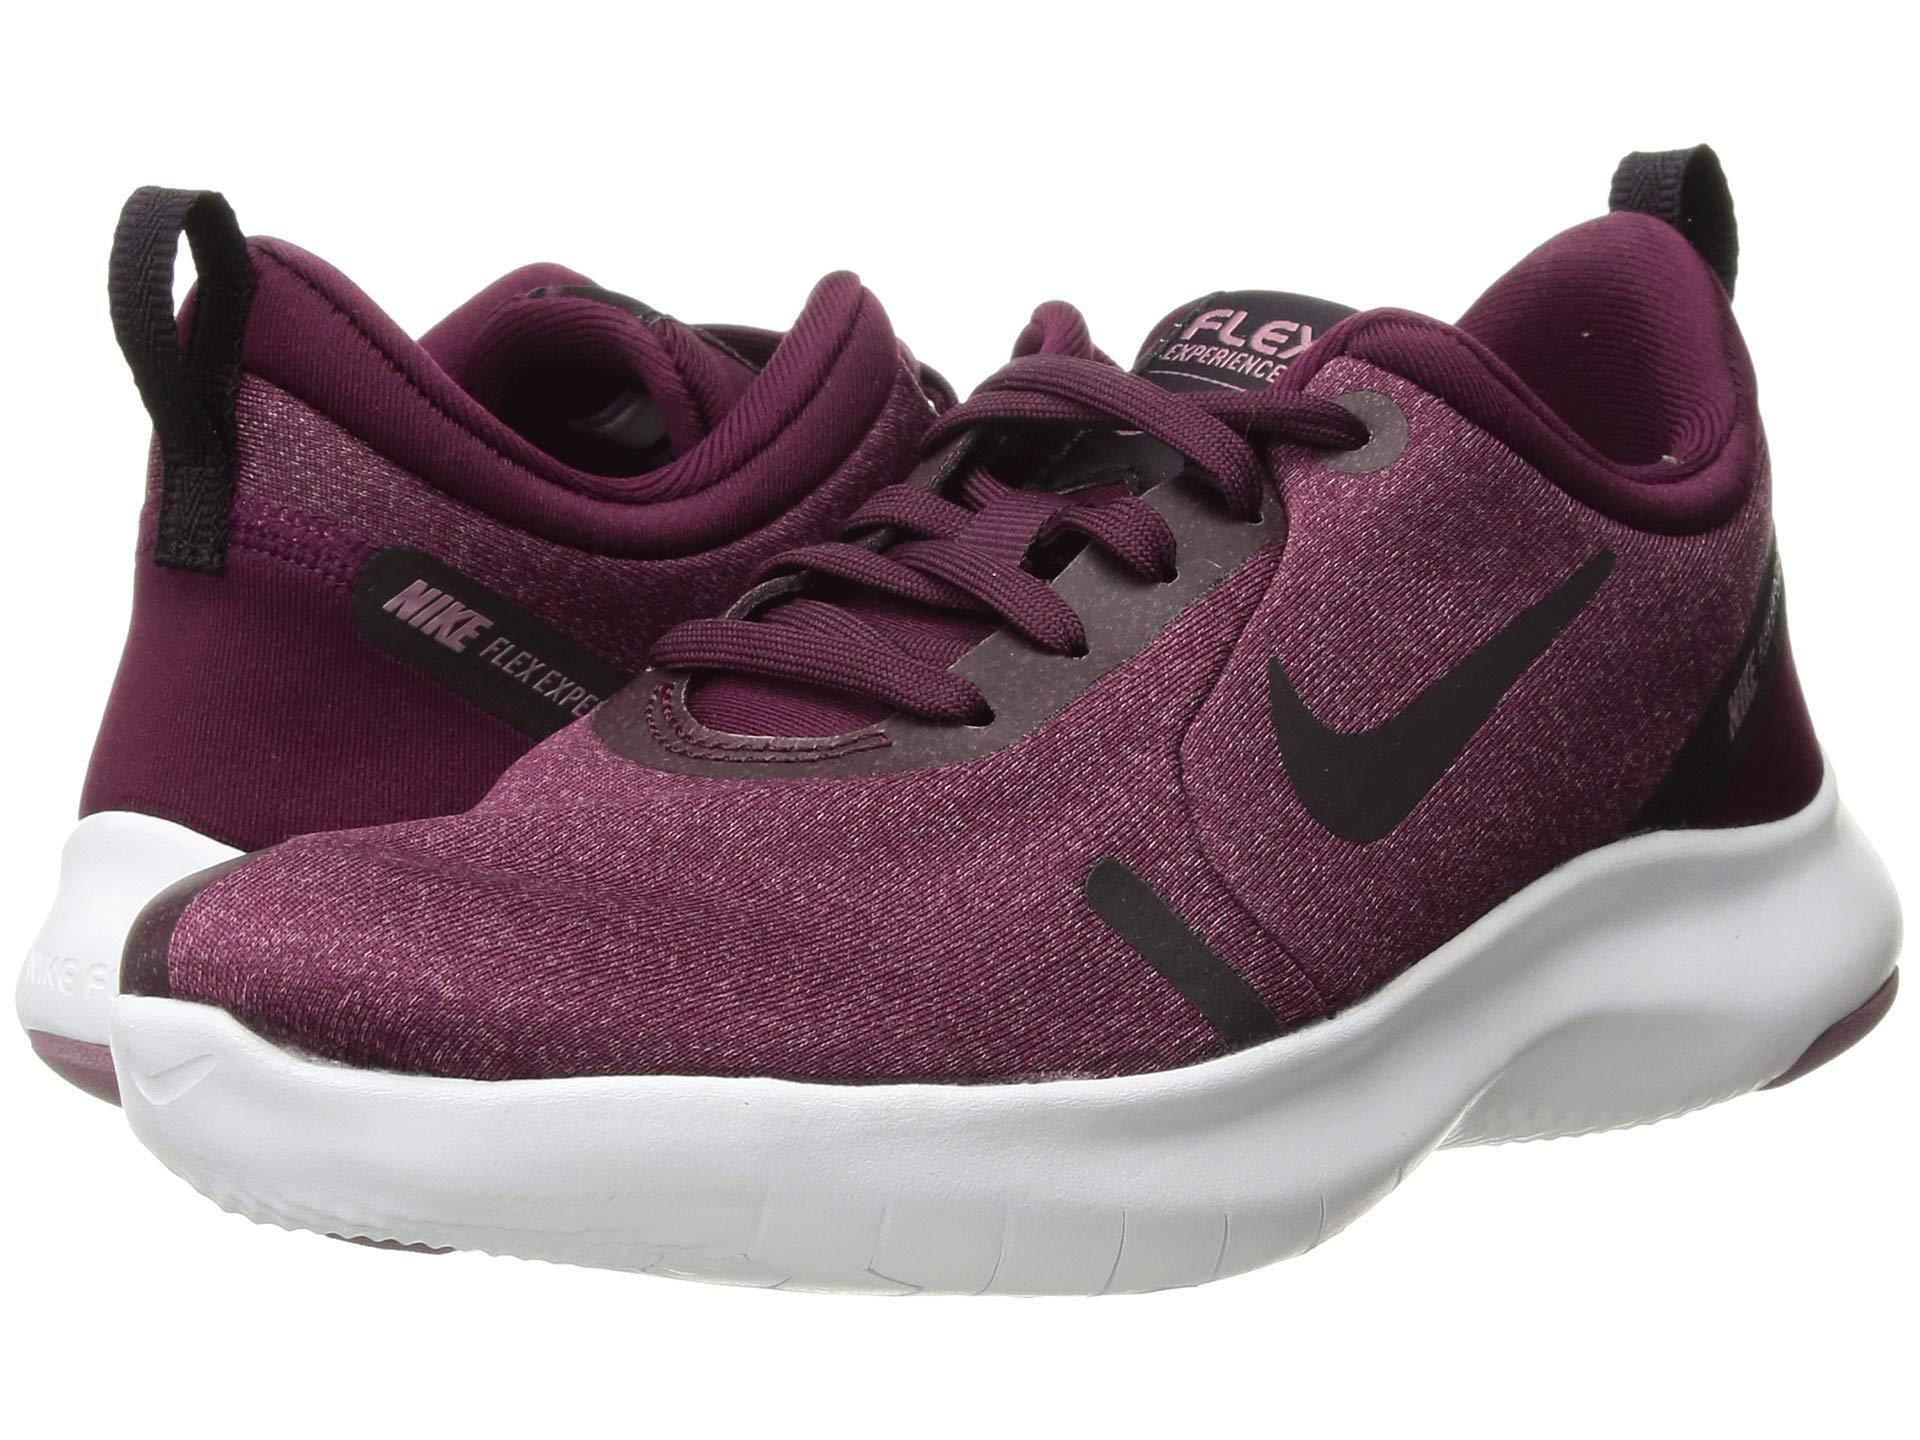 91d4f633b49 Lyst - Nike Flex Experience Run 8 Shoe in Purple - Save 8%